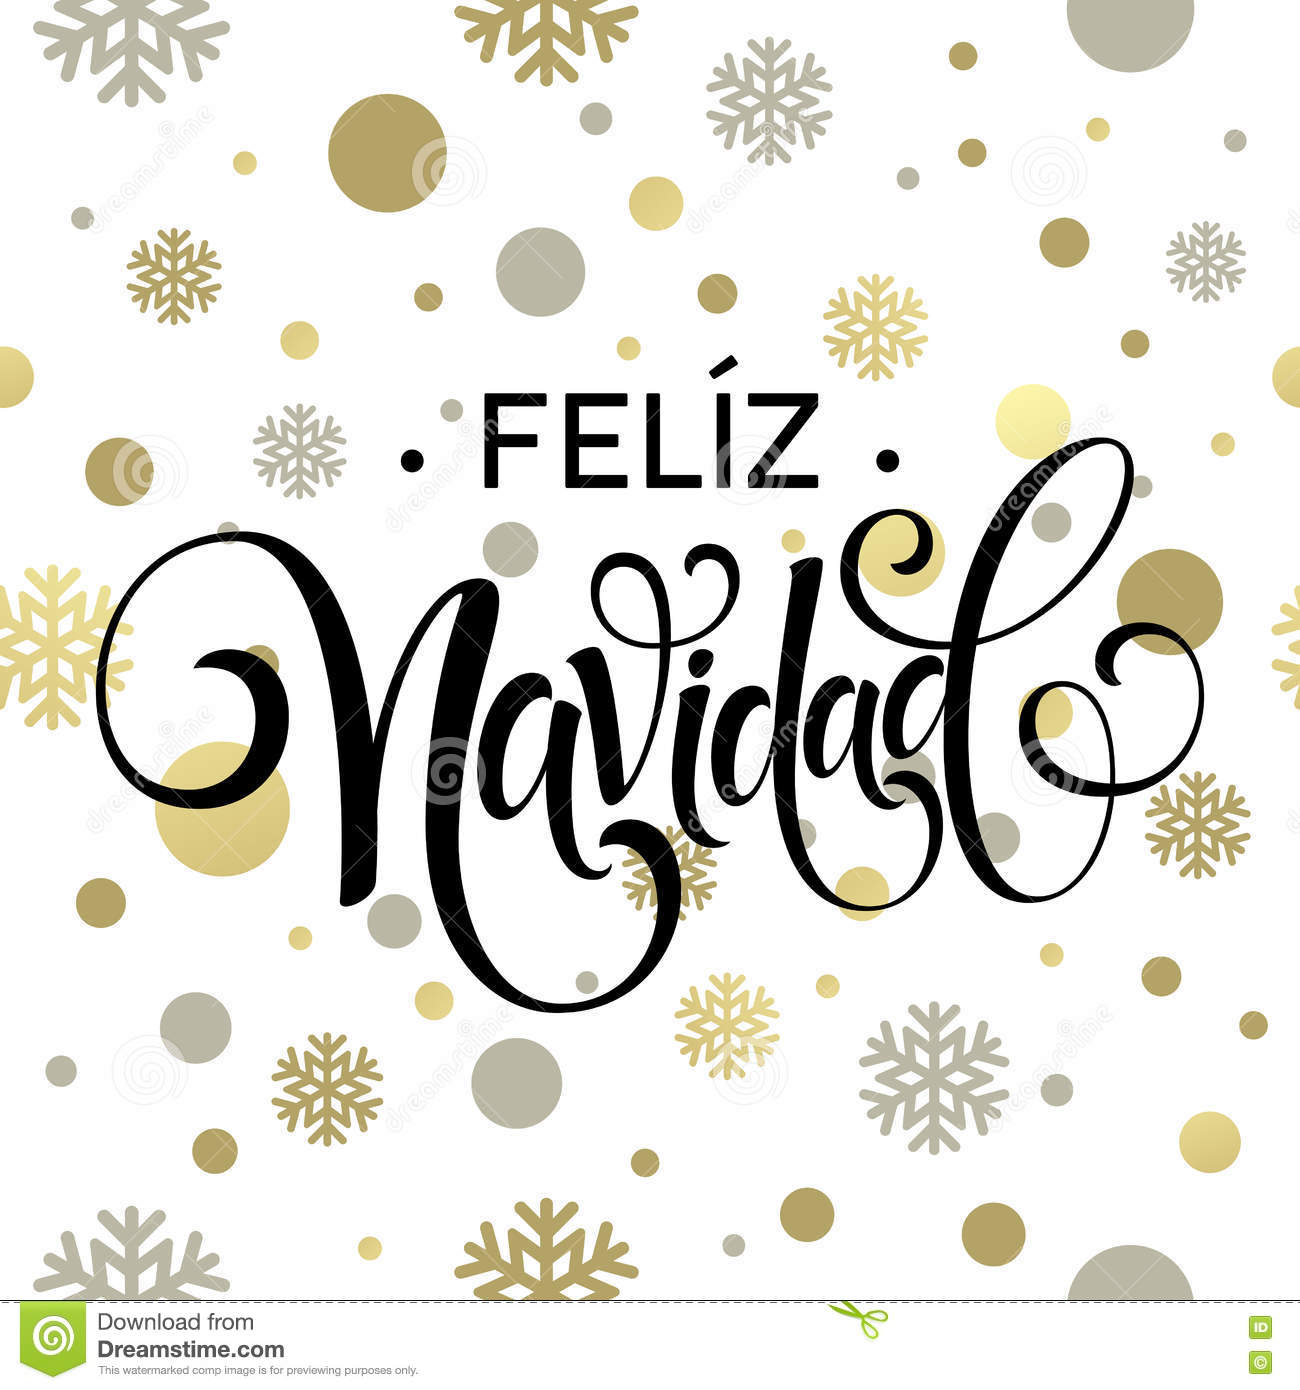 Feliz navidad hand lettering decoration text for greeting for A text decoration